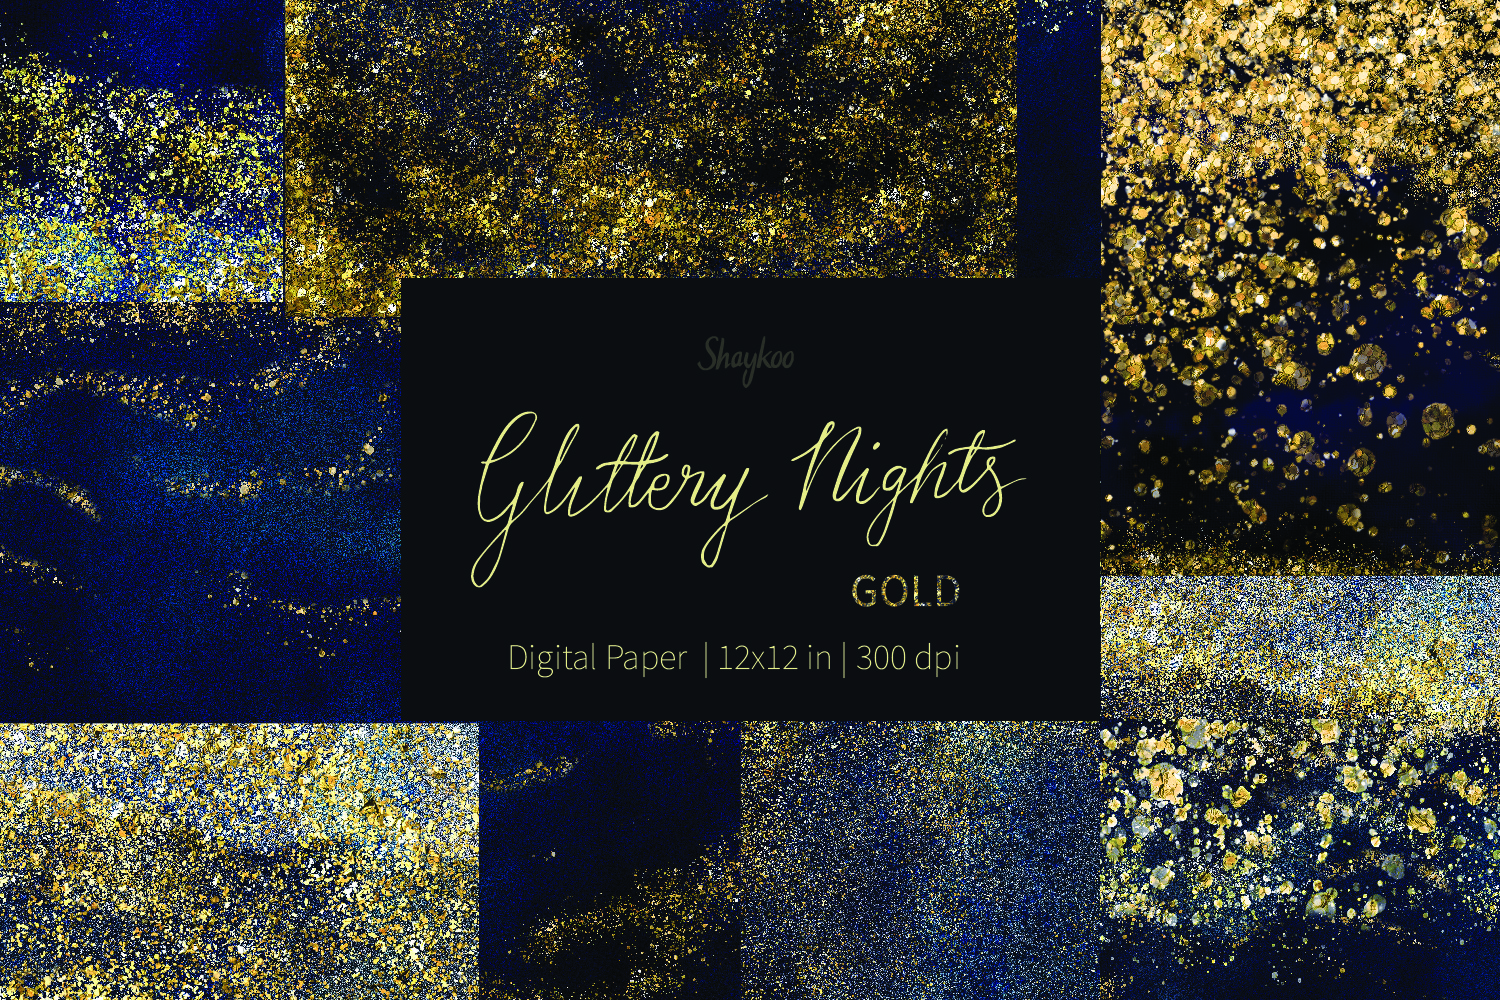 Starry Nights Digital Paper, Gold Glitter Background, Dark example image 1